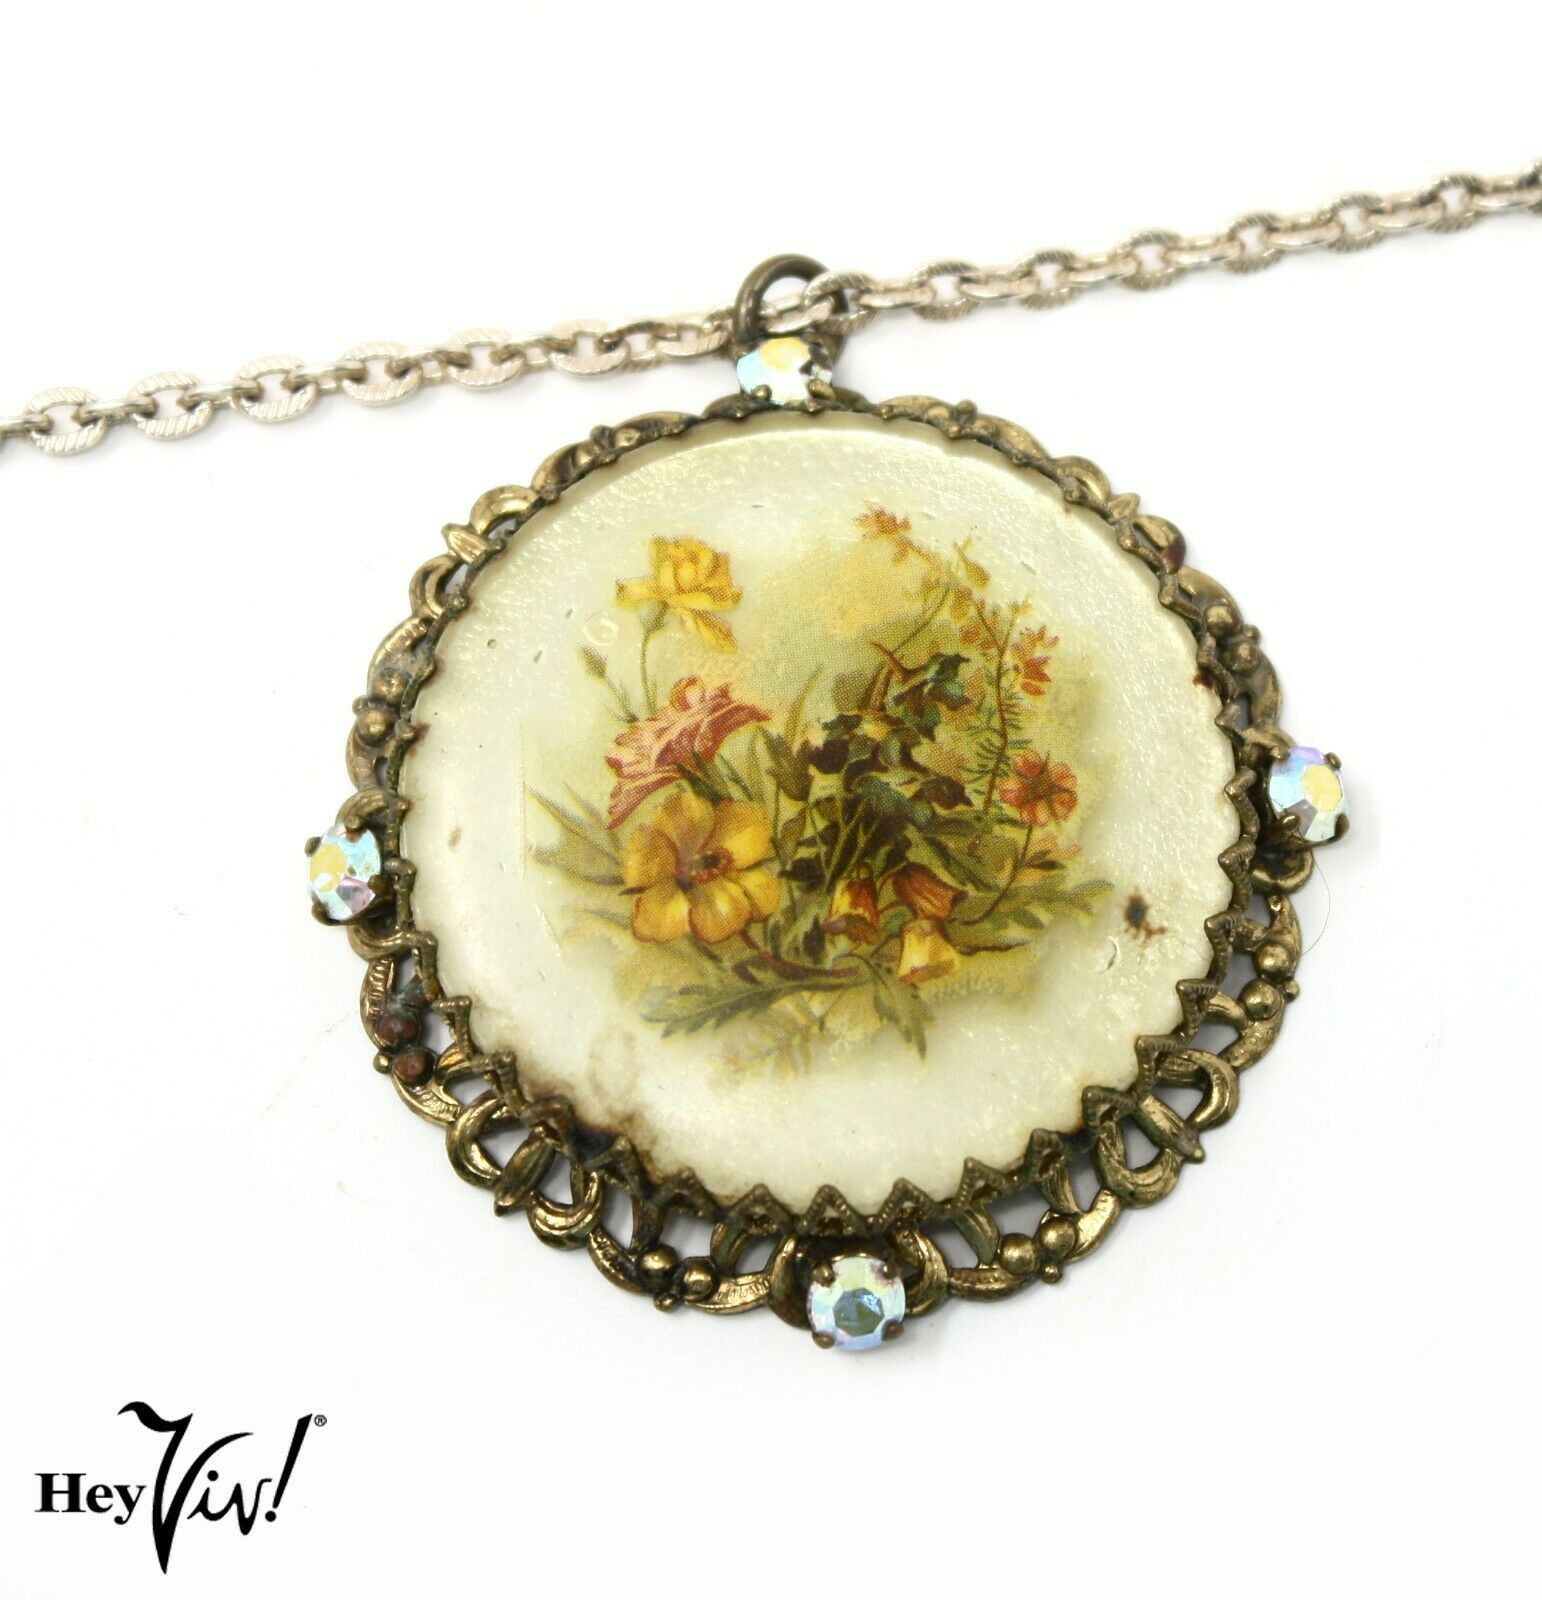 Primary image for Vintage Pendant Necklace - Delicate Yellow Flowers on Filigree Round - Hey Viv